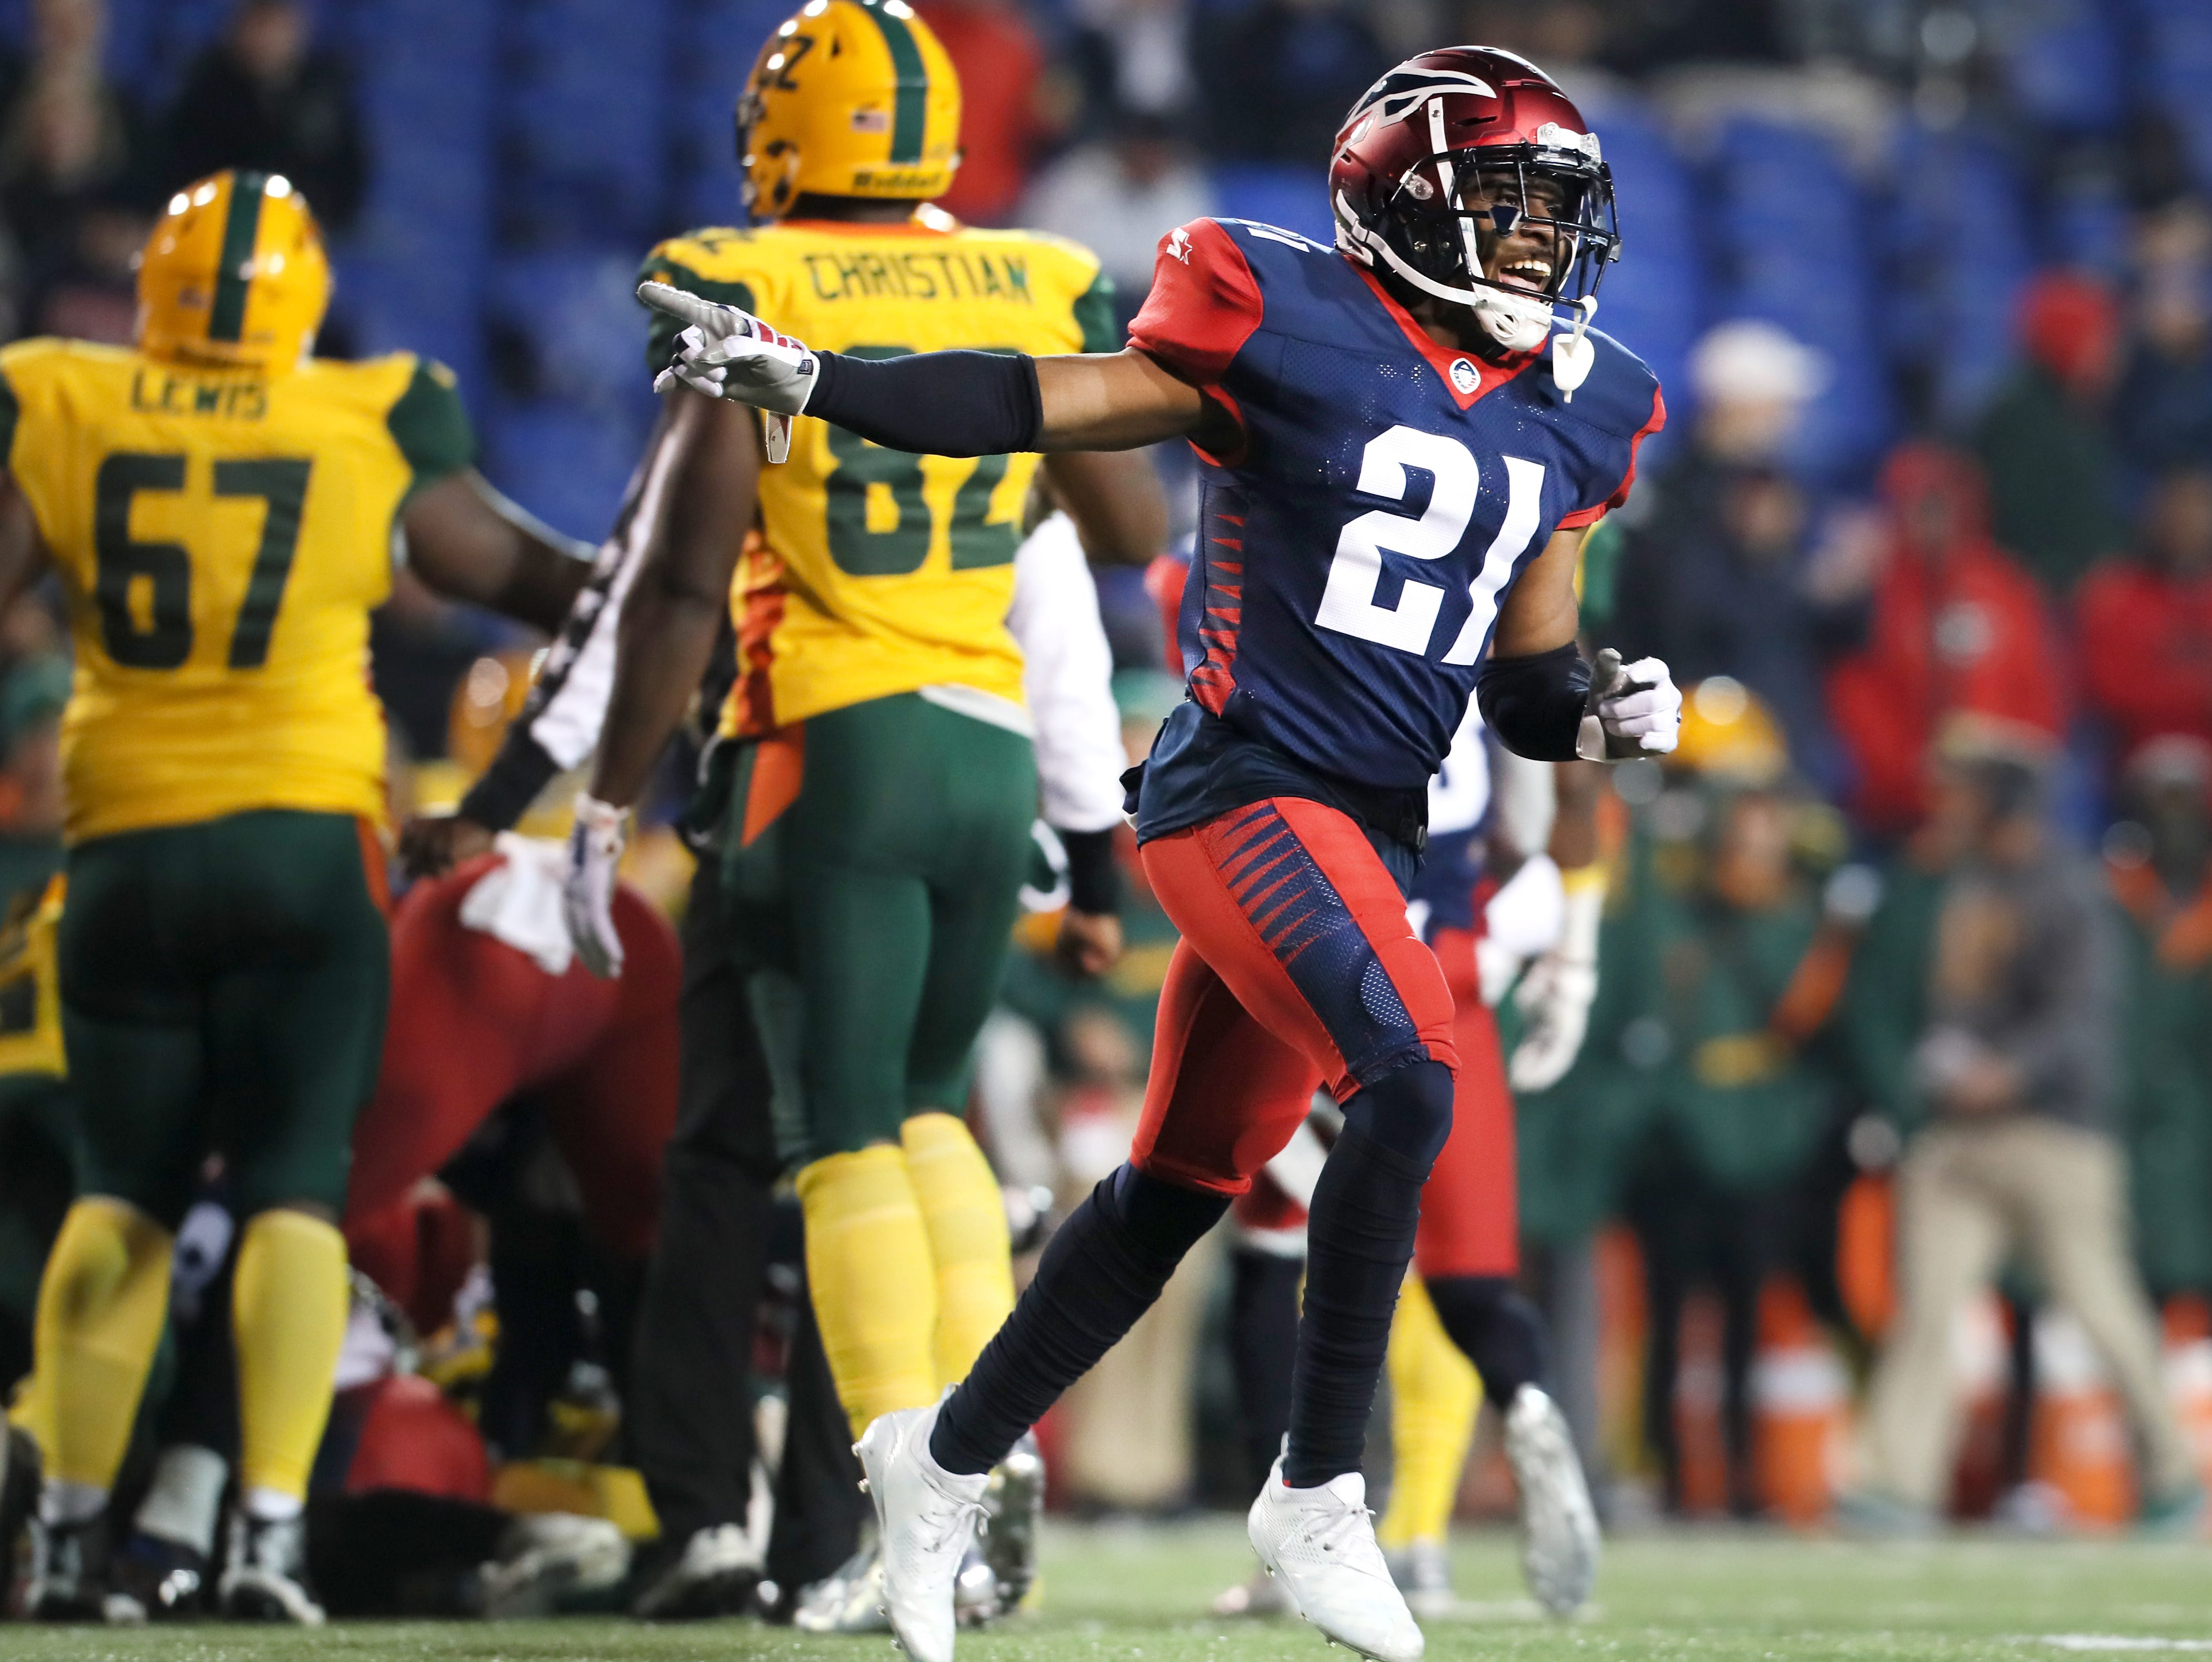 Memphis Express cornerback Terrell Bonds celebrates a takeaway from the Arizona Hotshots during their game at the Liberty Bowl on Saturday, Feb. 16, 2019.